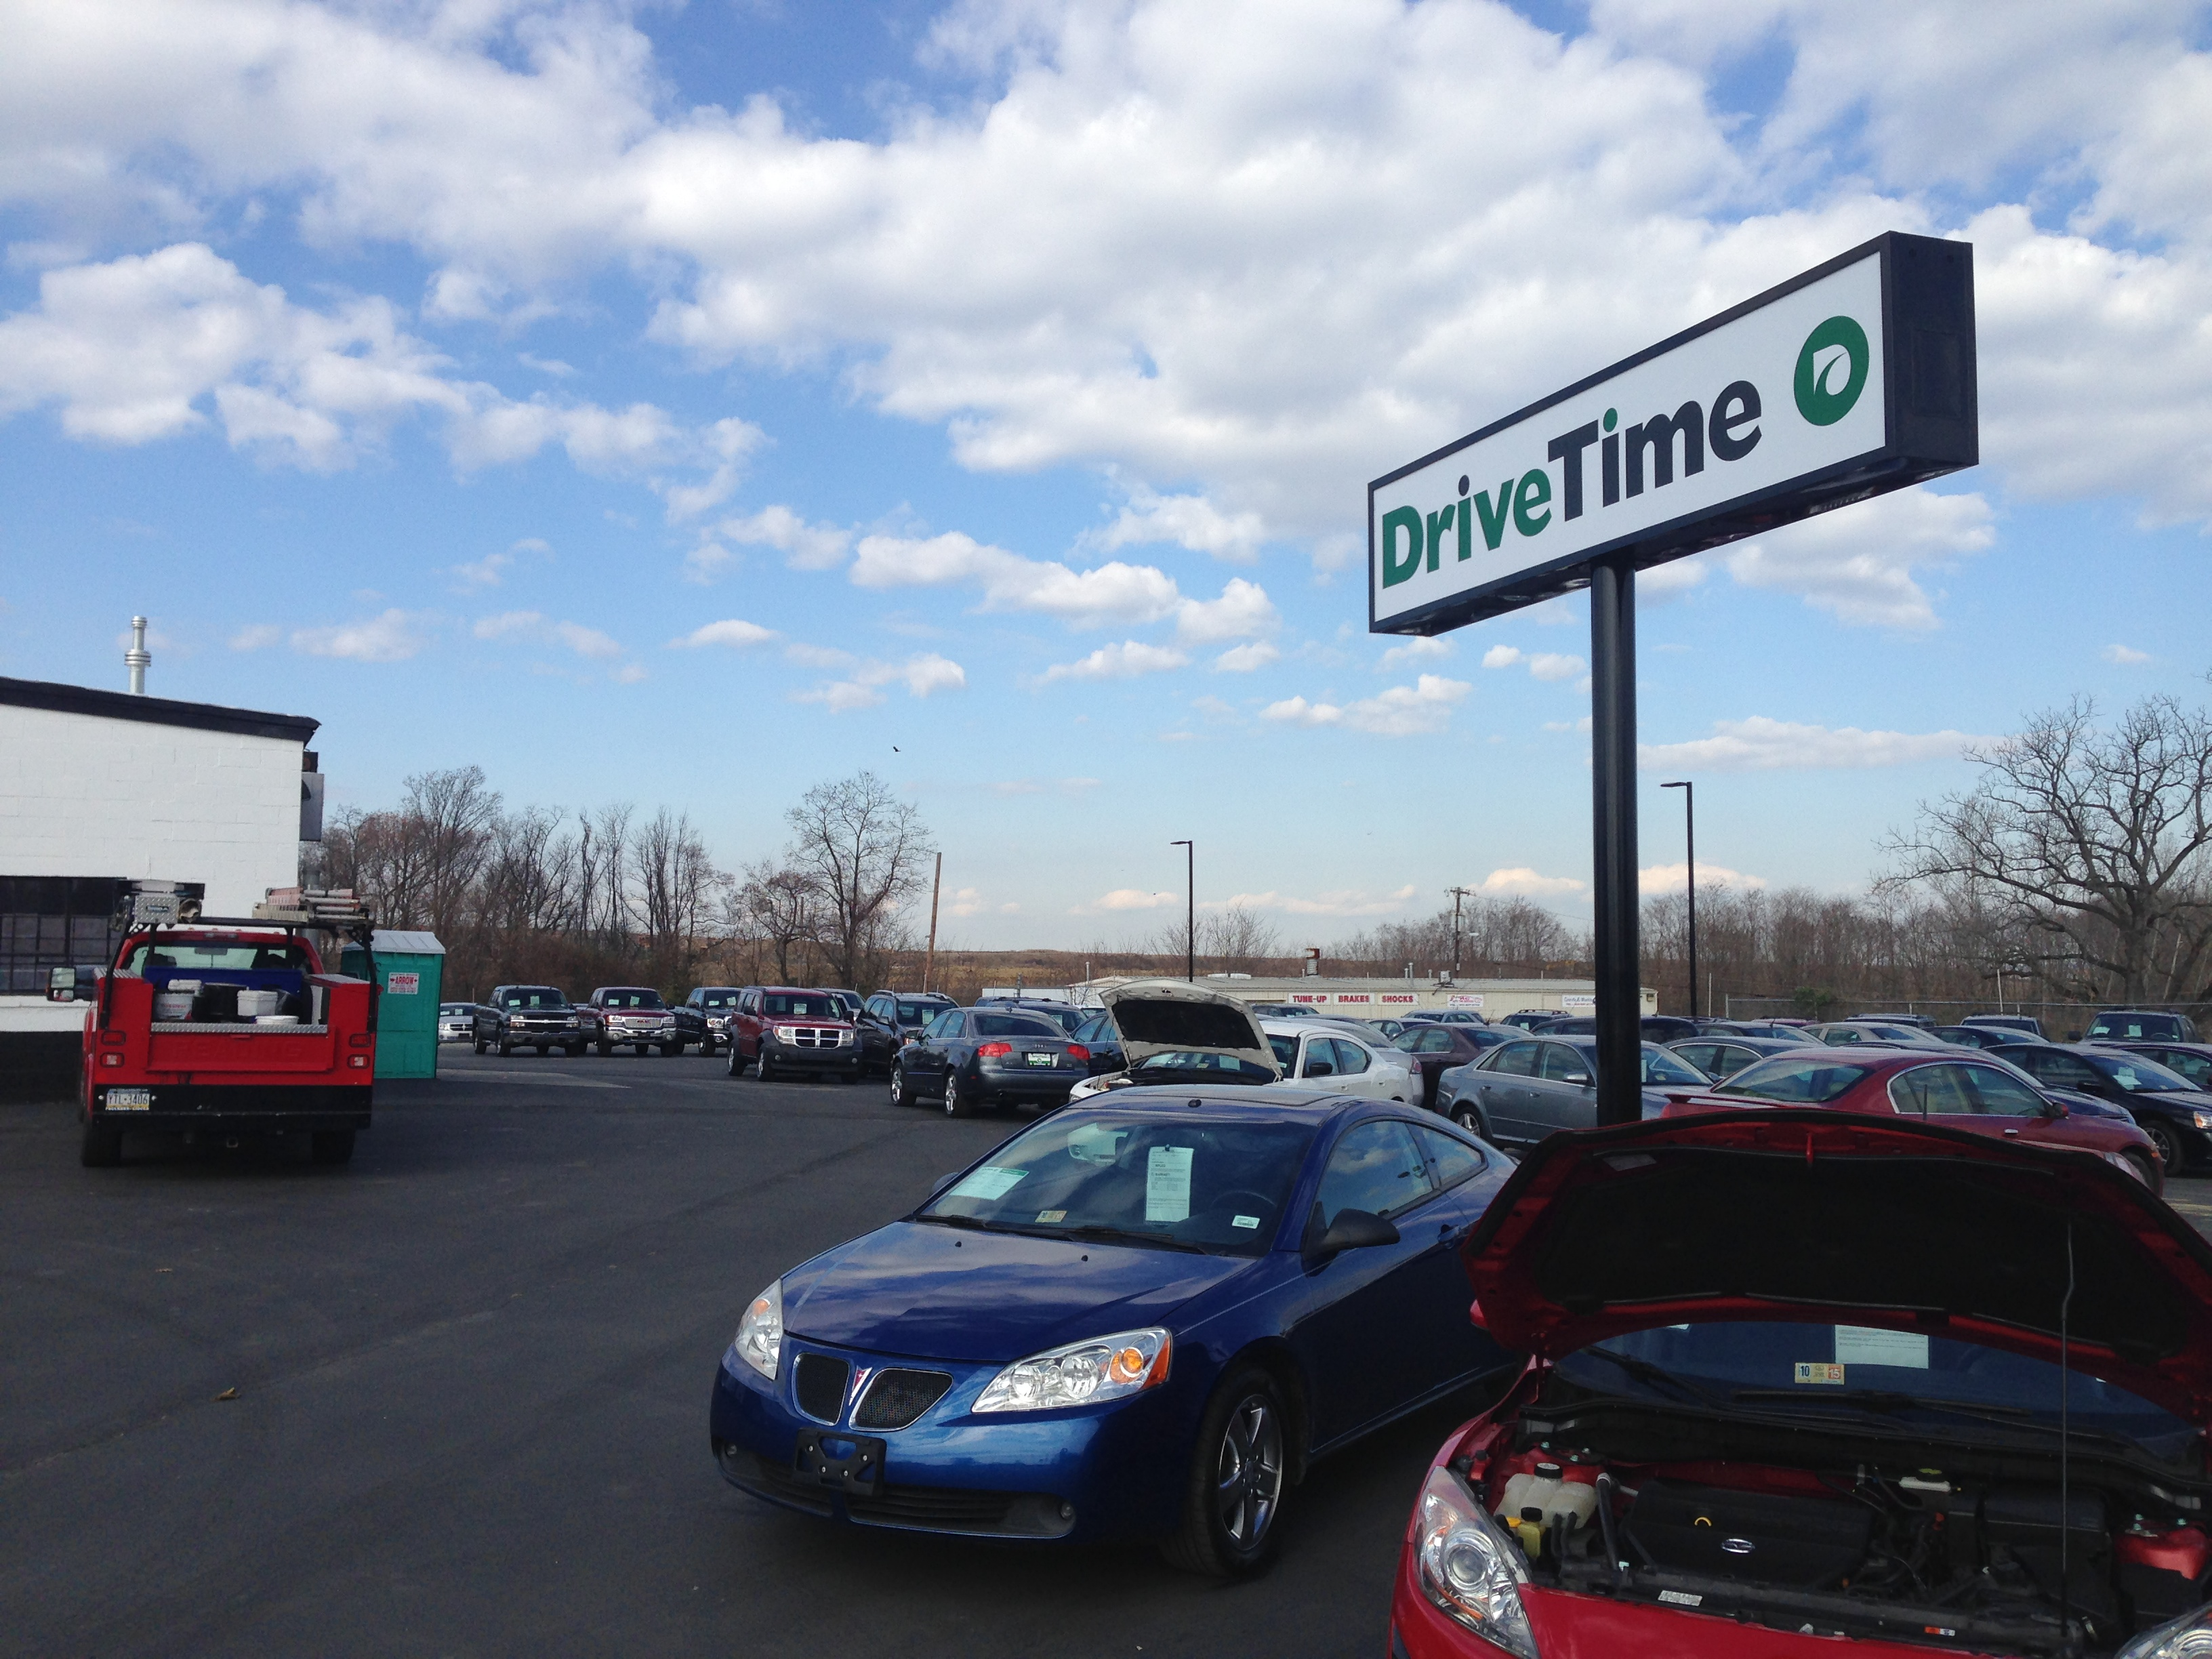 Used Car Dealers In New Castle Delaware